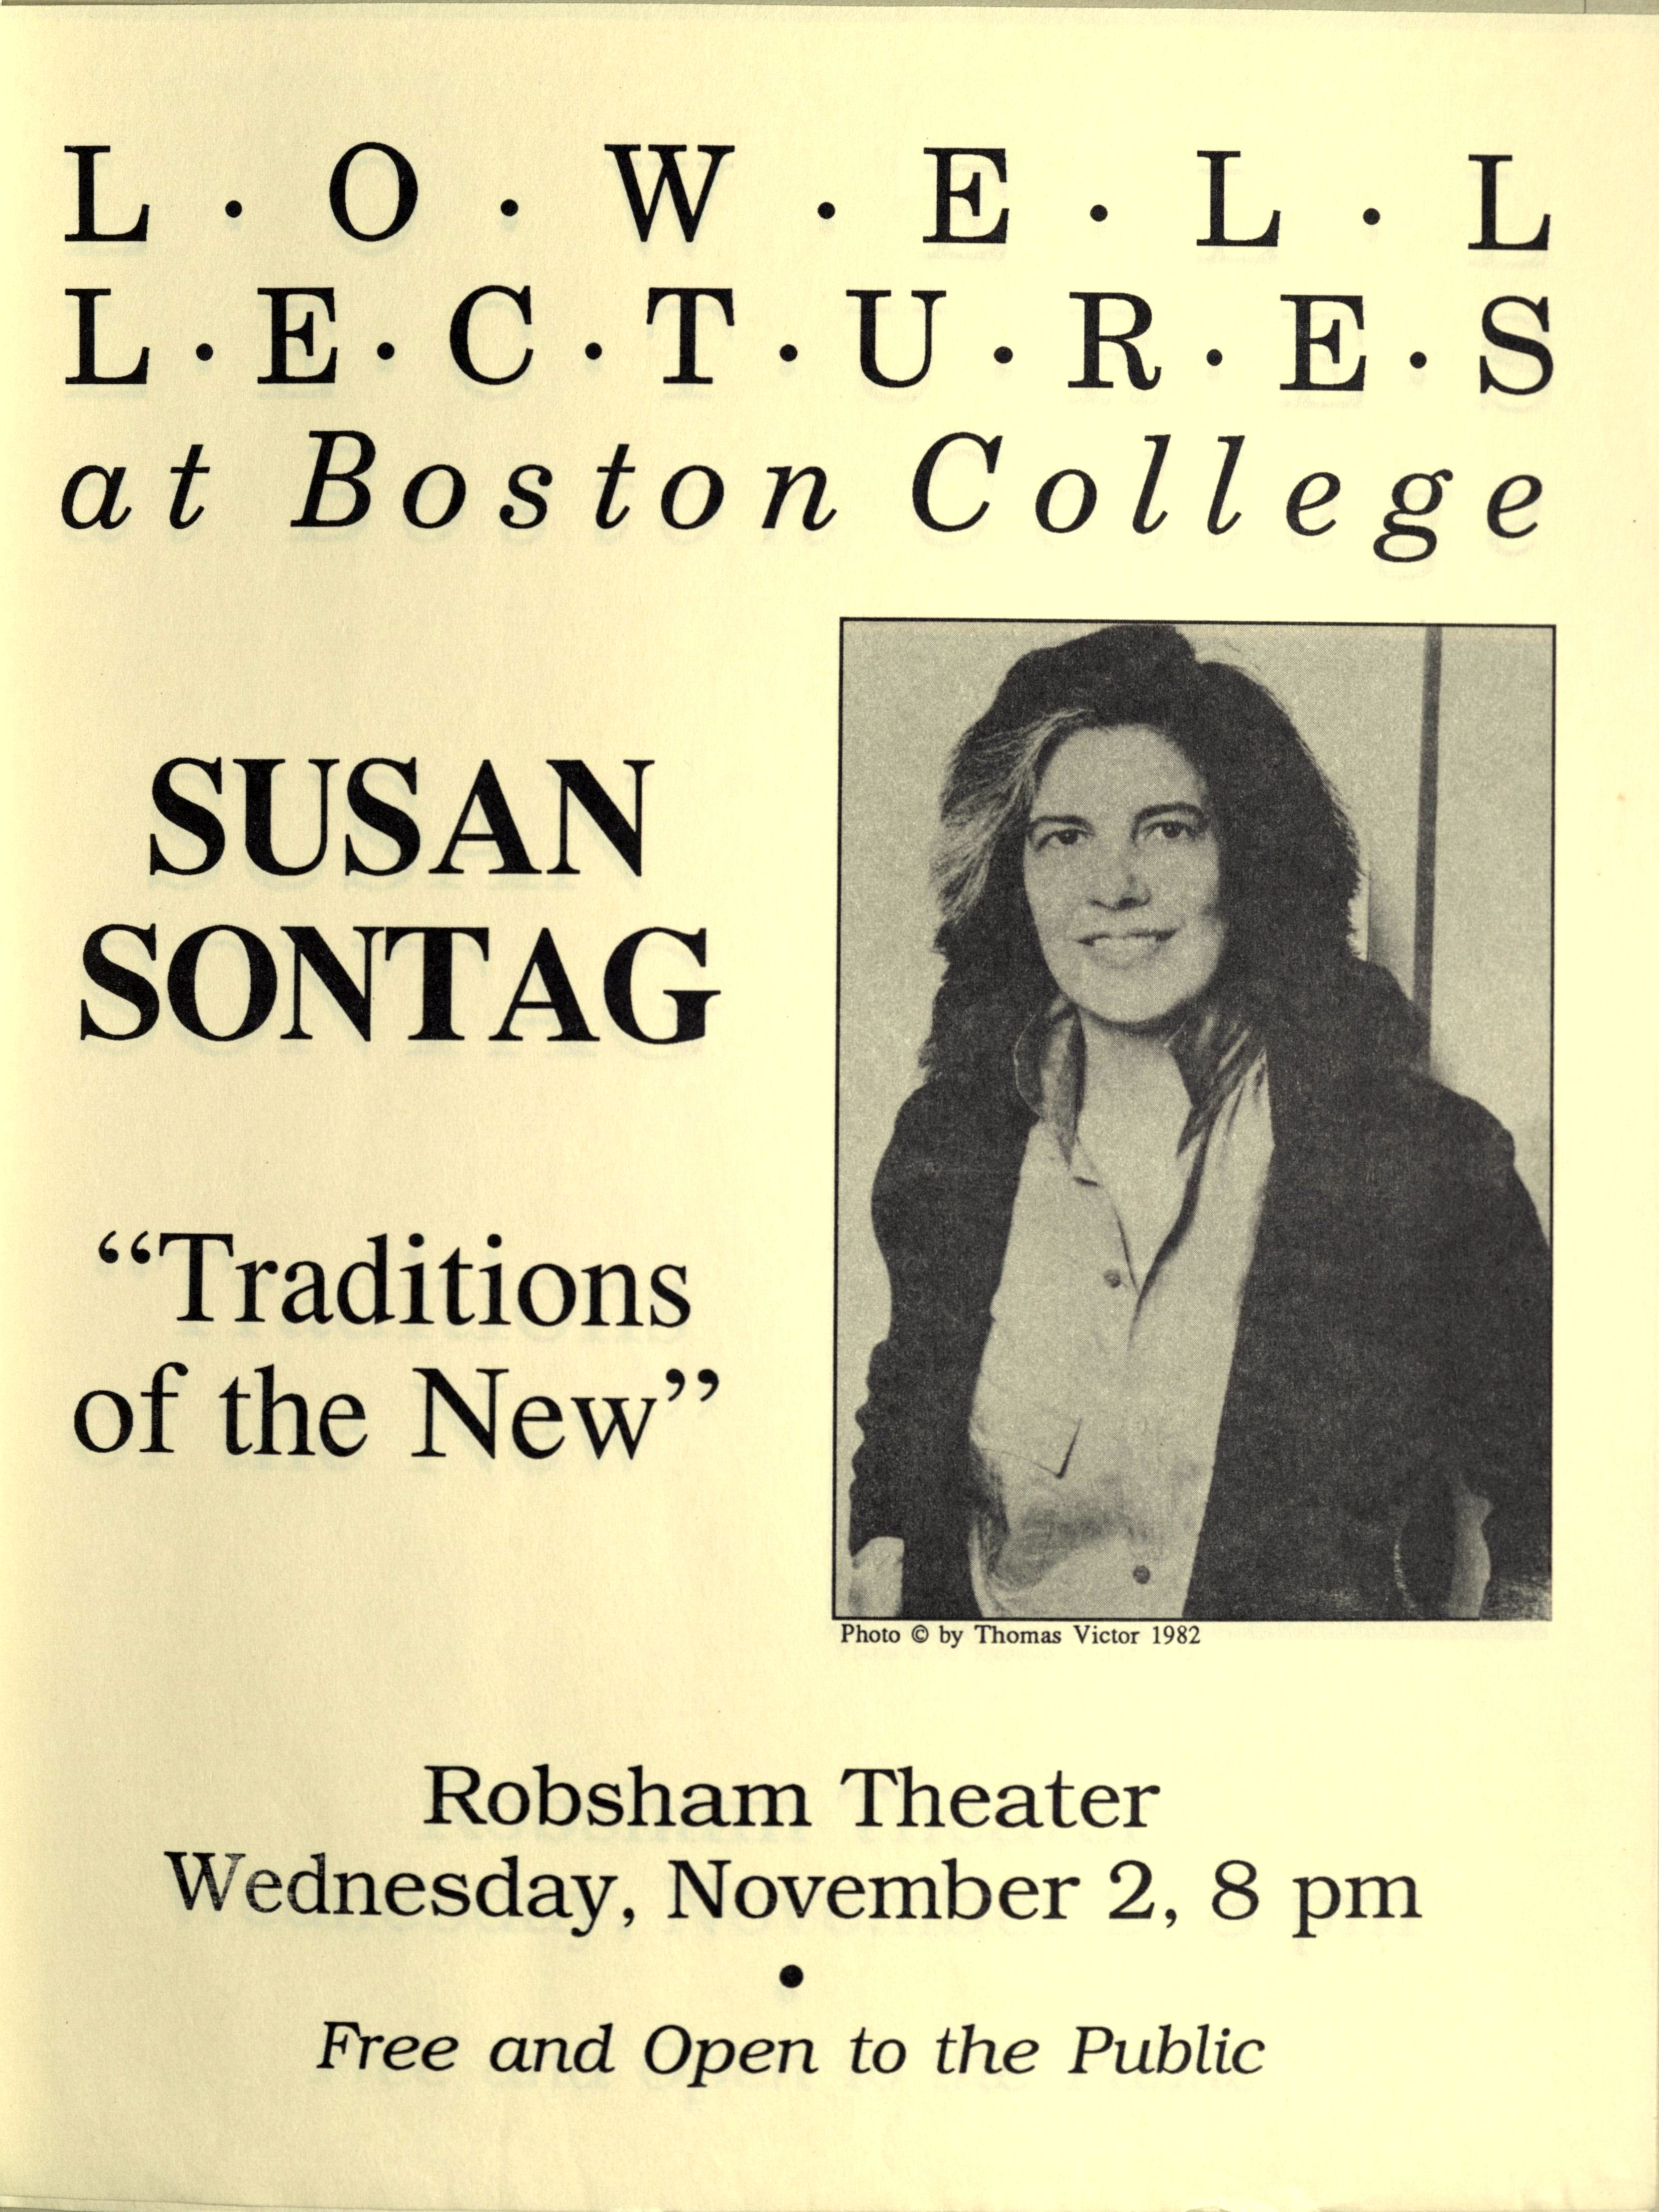 archives diary susan sontag the humanities series john j susan sontag poster humanities series director s records folder 8 box 45 ms